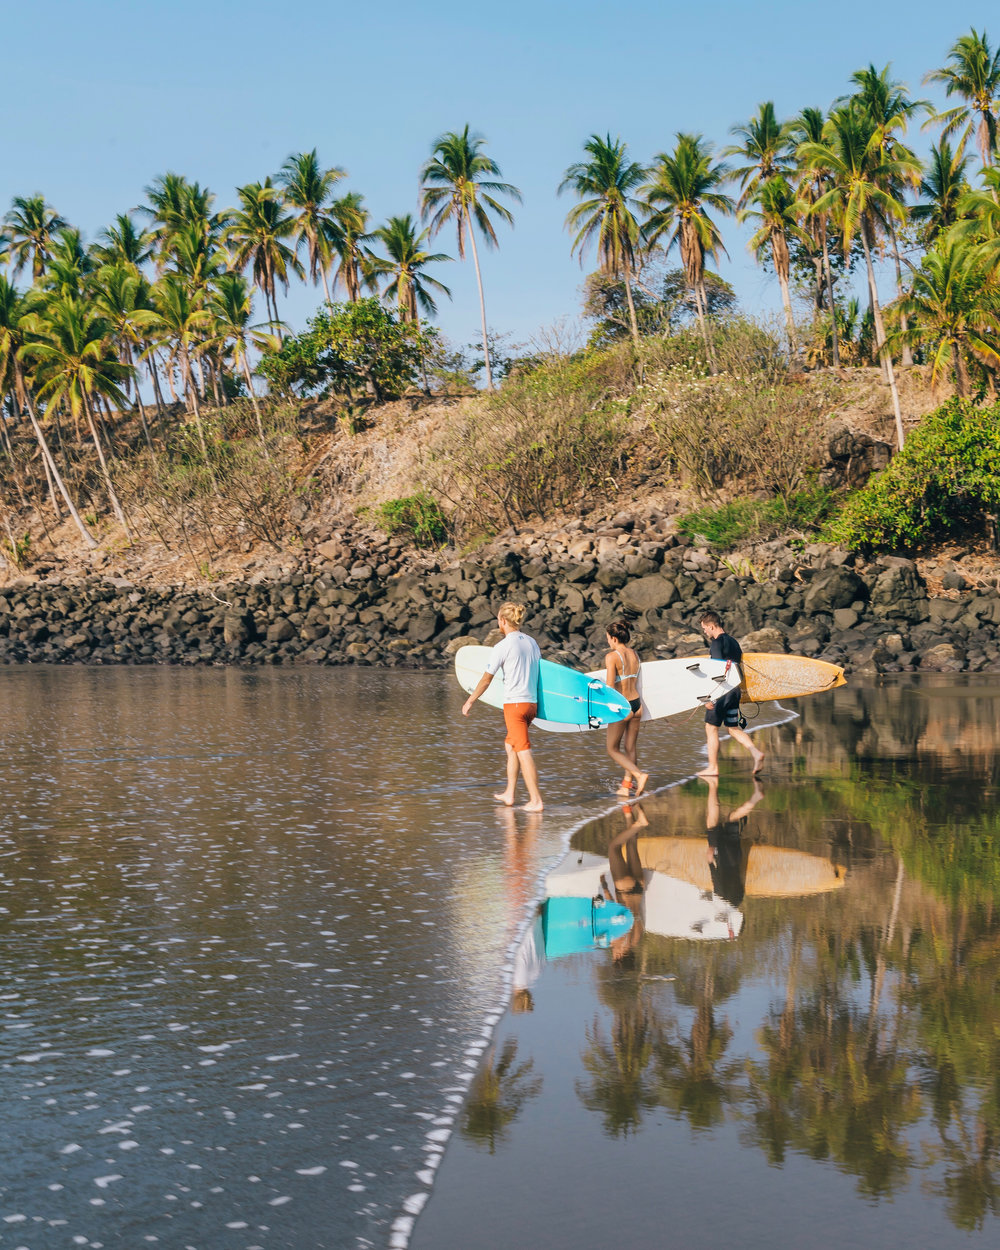 Influencers head out for a morning surf